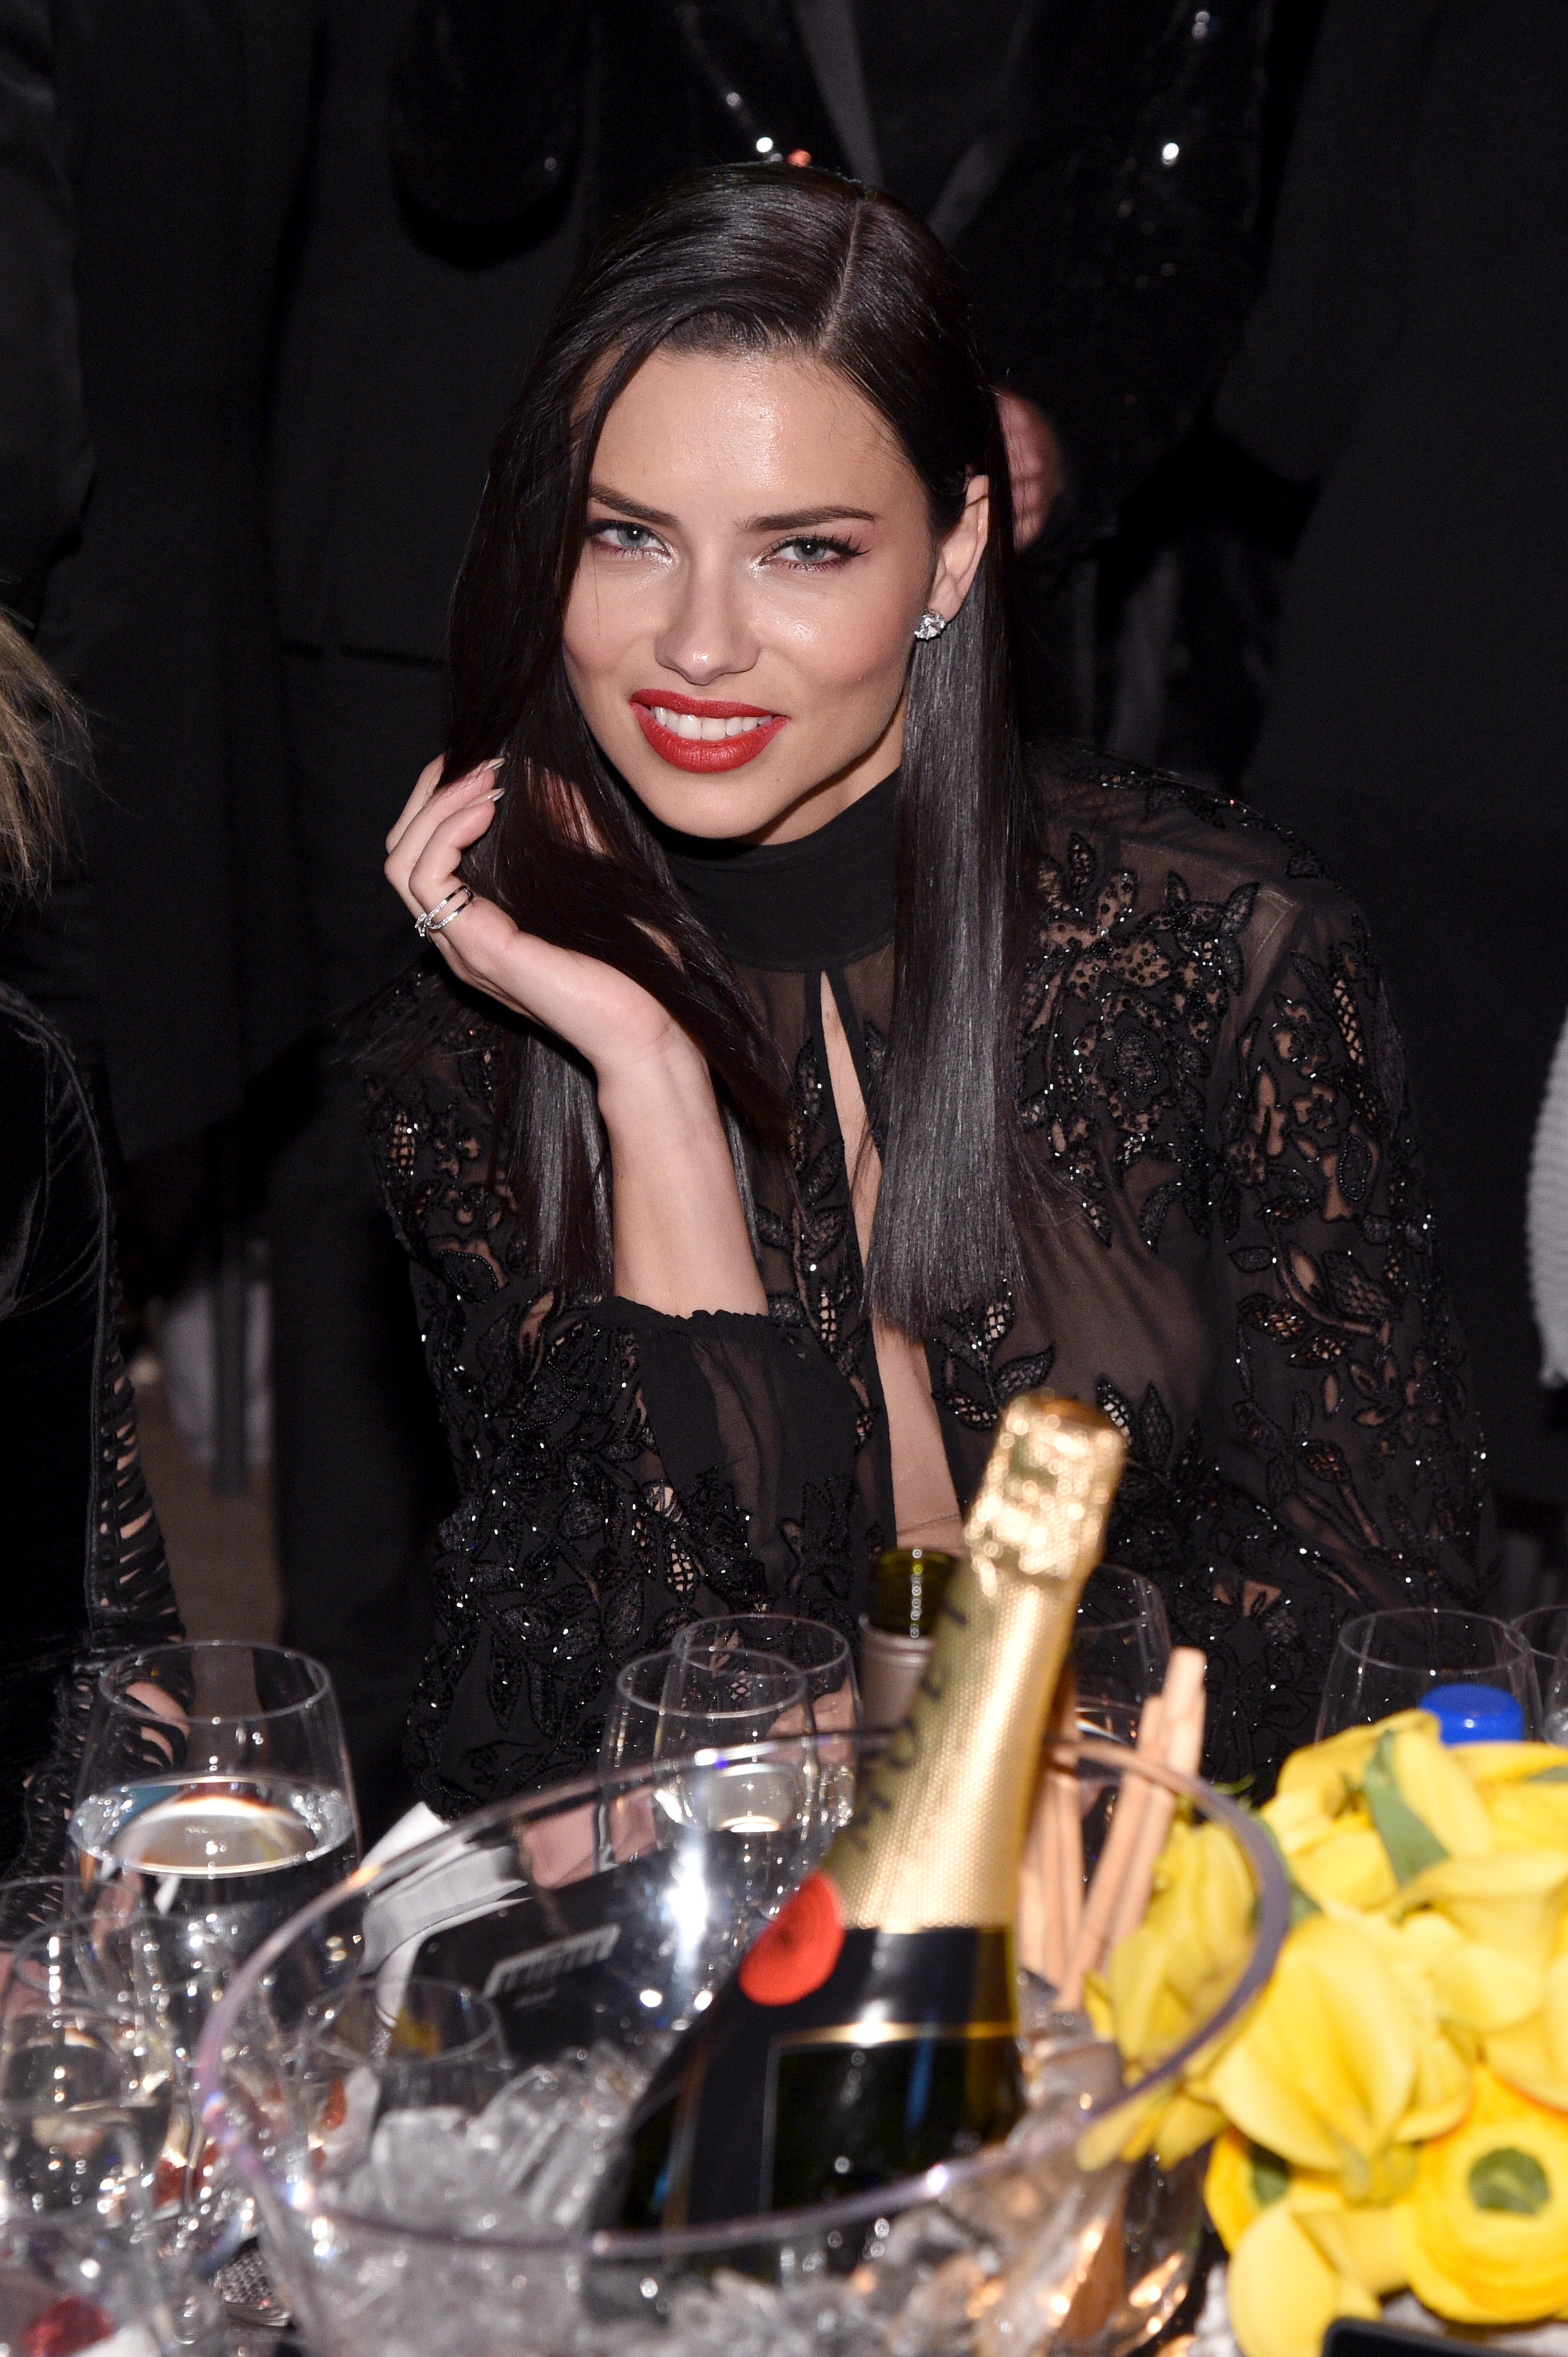 NEW YORK, NY - FEBRUARY 08: Model Adriana Lima attends as Moet & Chandon Toasts to the amfAR New York Gala At Cipriani Wall Street at Cipriani Wall Street on February 8, 2017 in New York City.  (Photo by Bryan Bedder/Getty Images for Moet & Chandon)